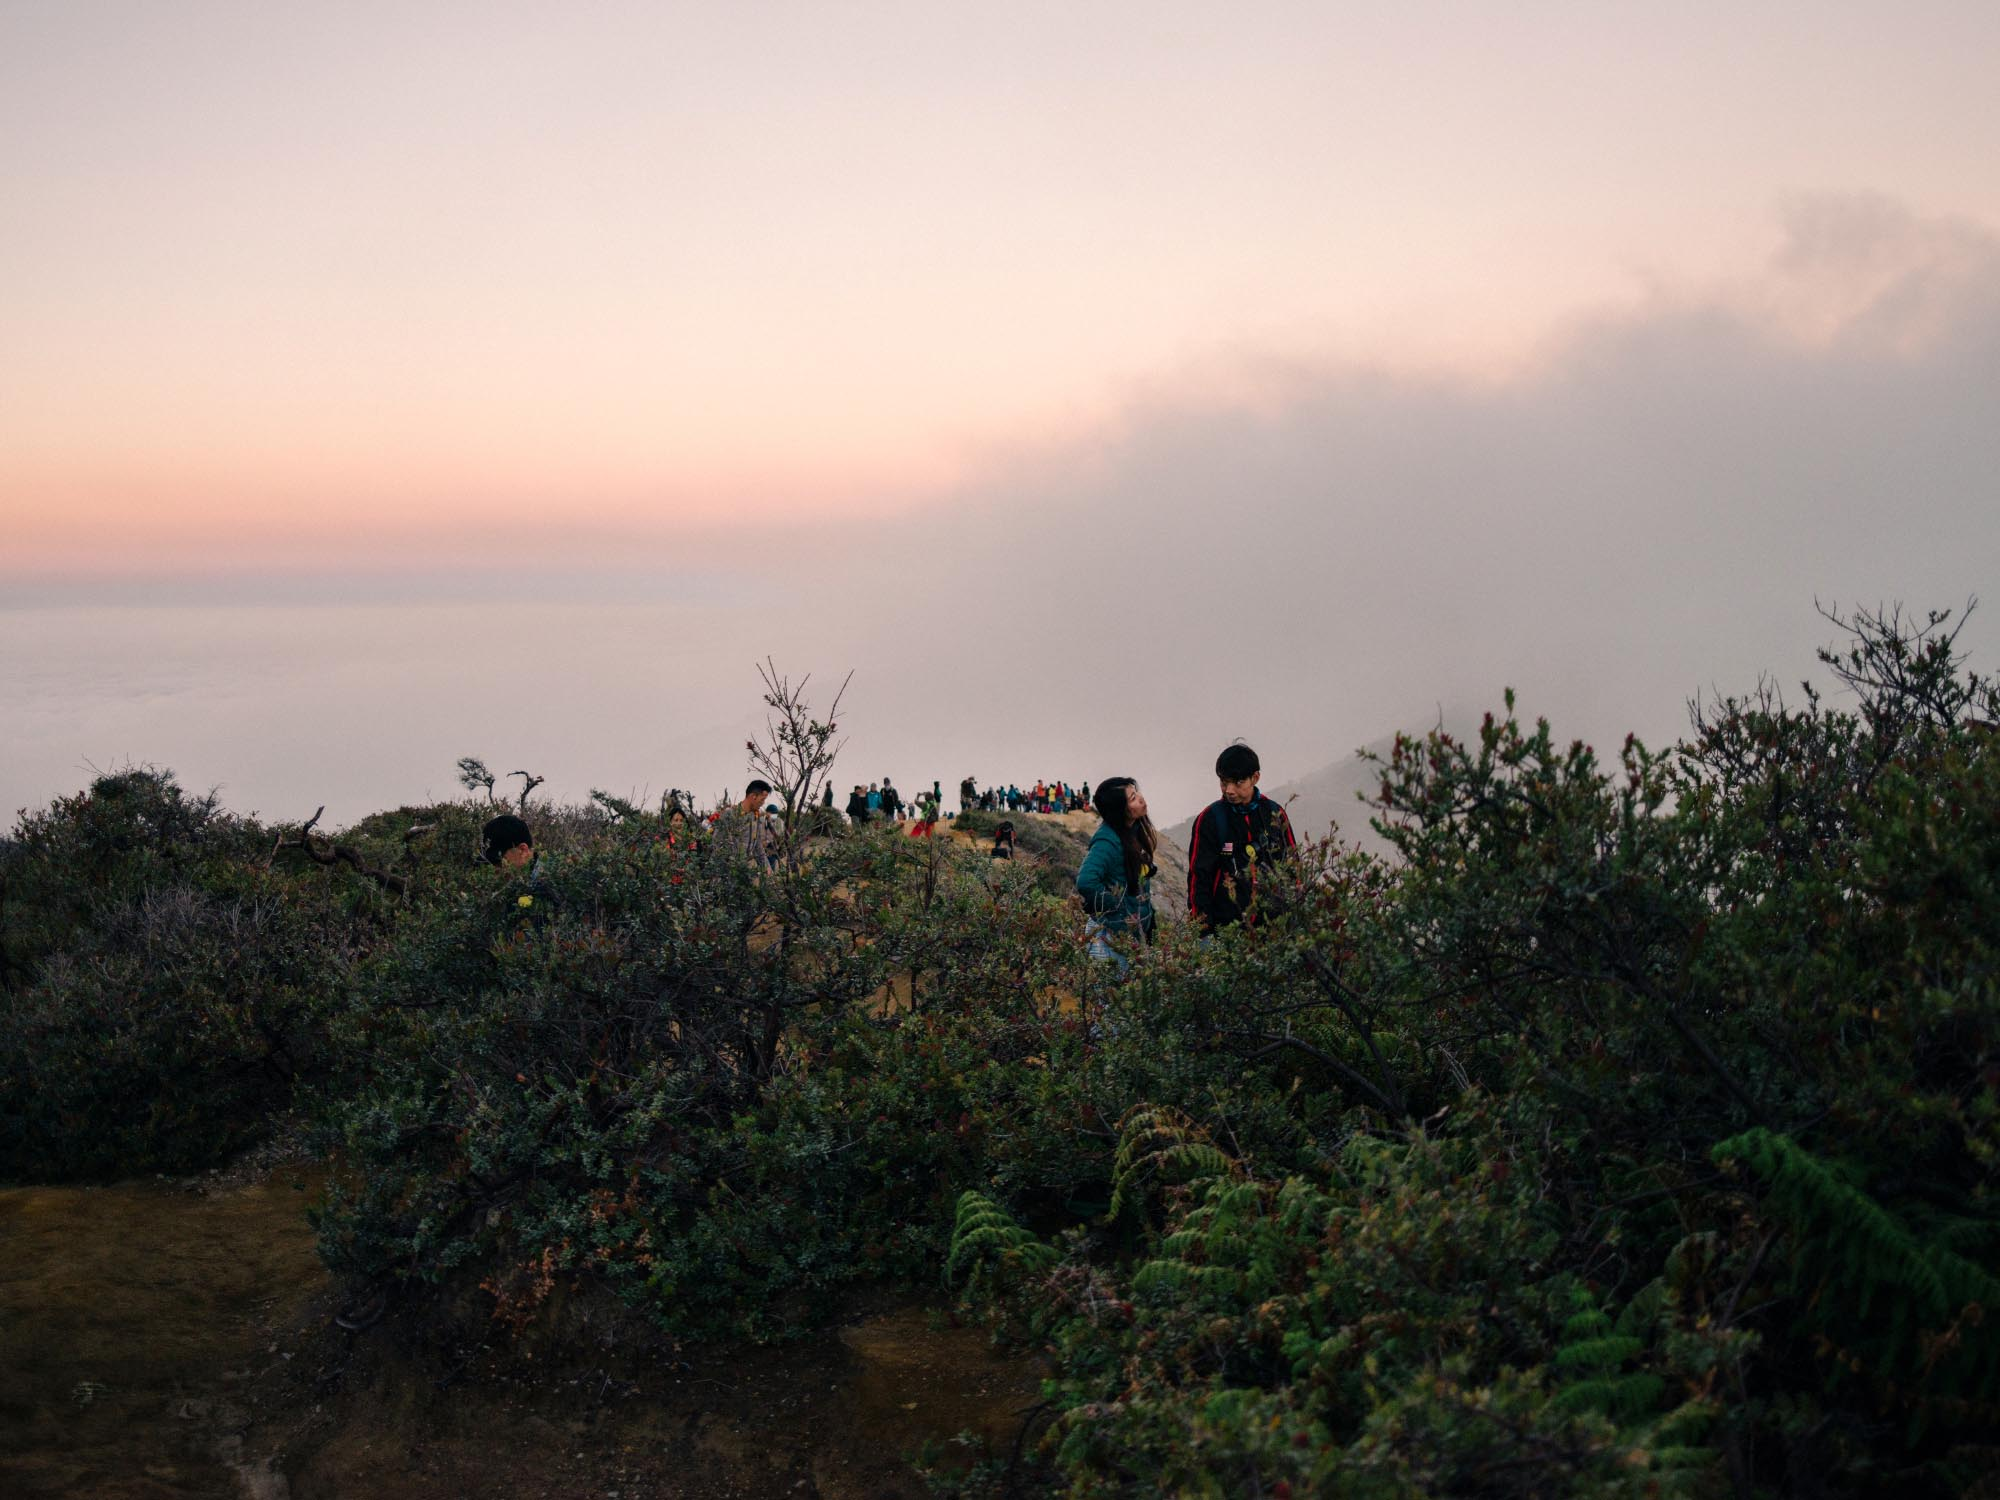 The sunrise at the rim of Mount Ijen.